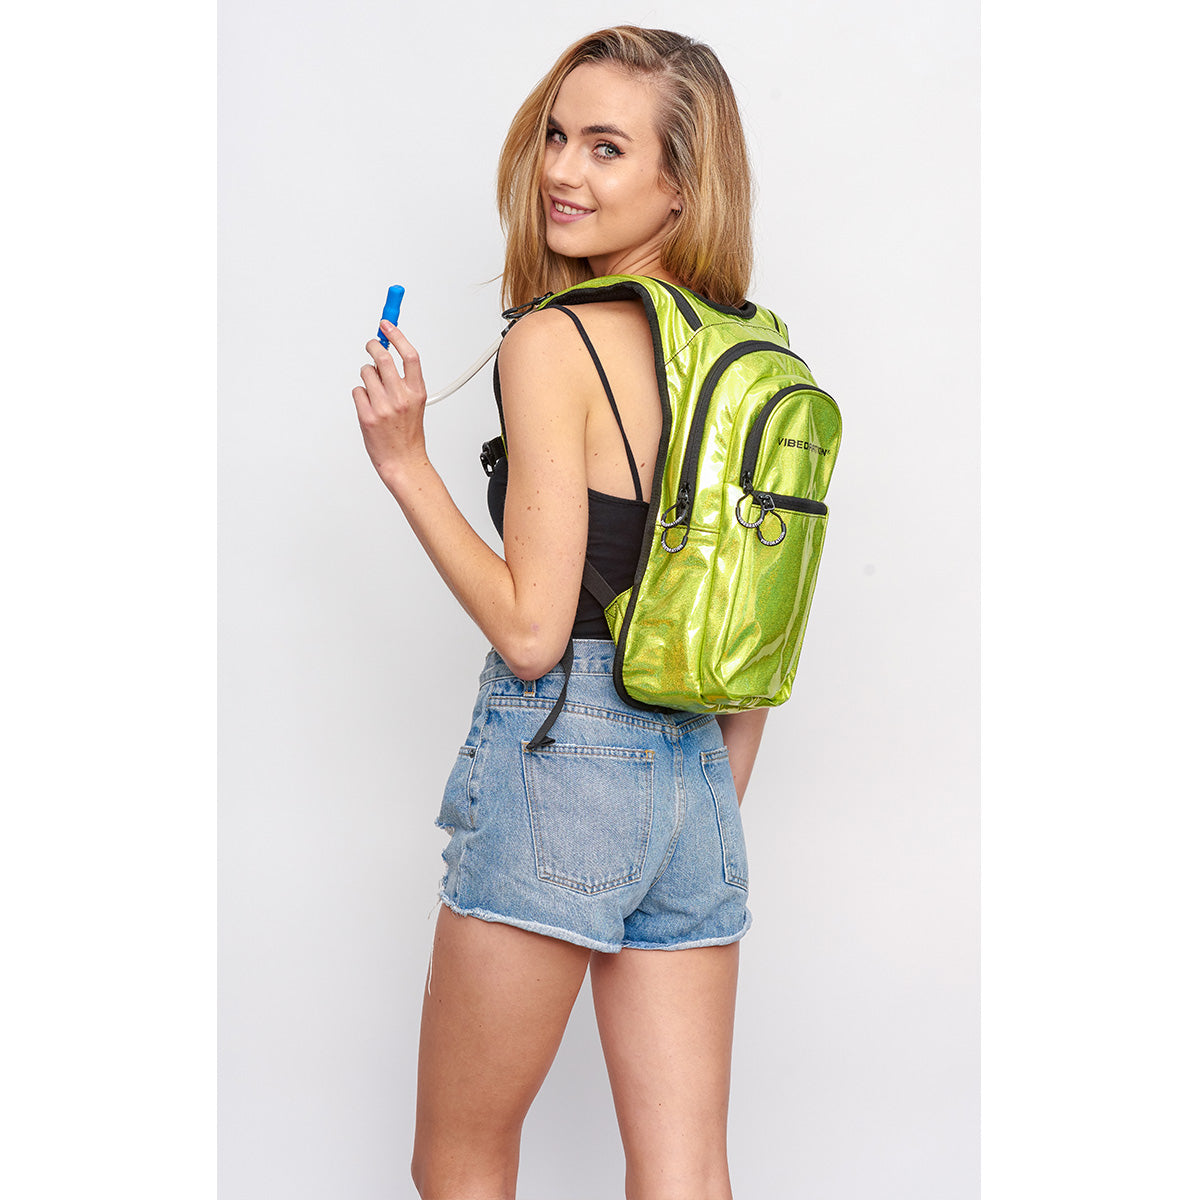 Women Side shot wearing Neon Yellow VIP Festival Hydration Pack